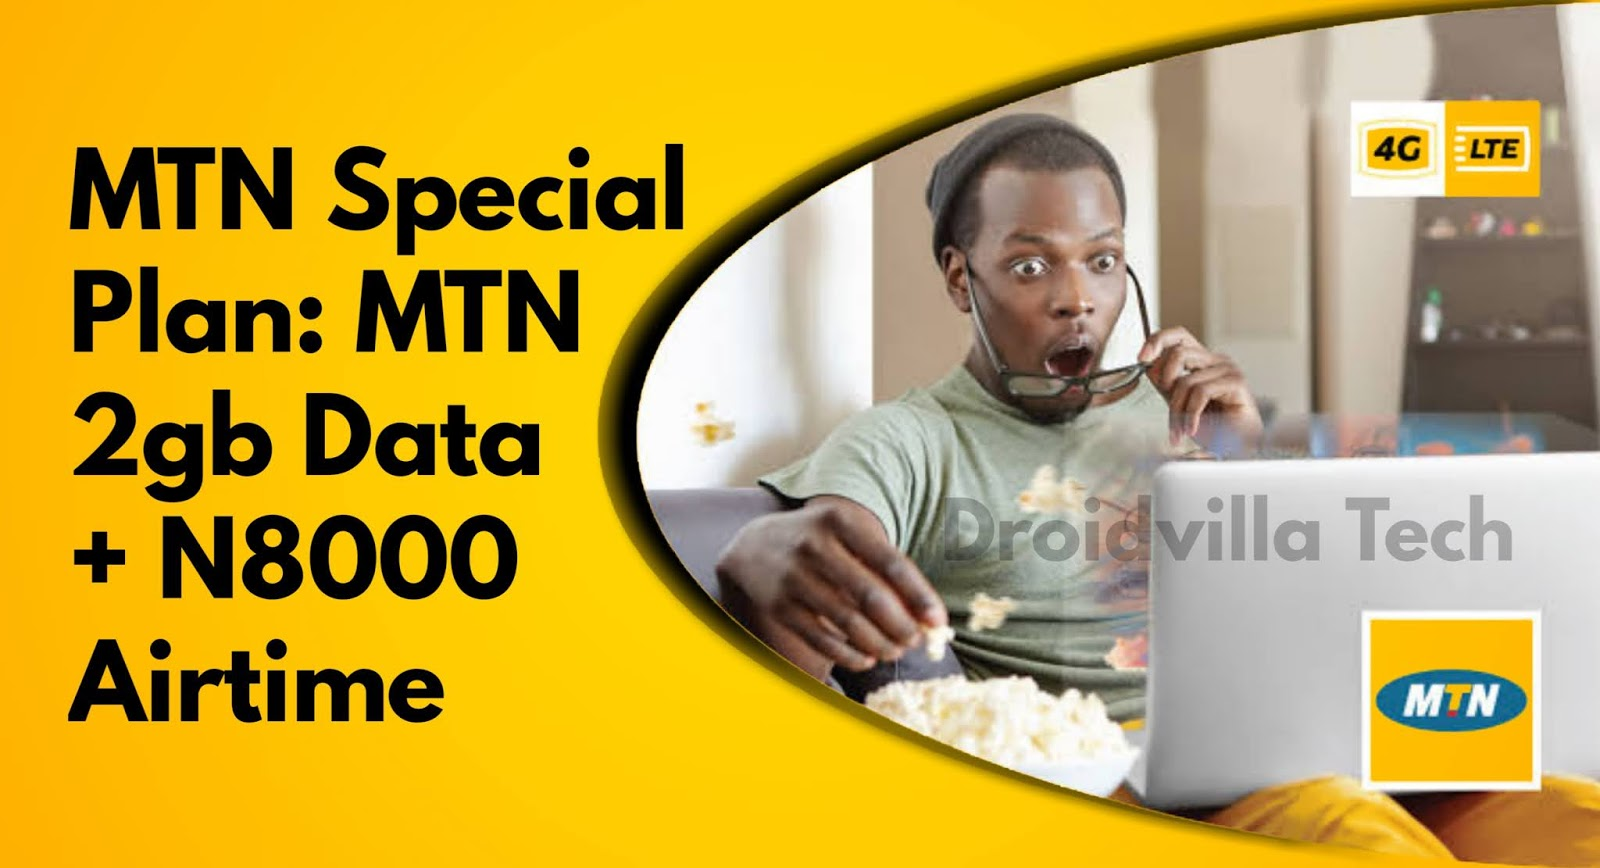 MTN Special plan 2gb